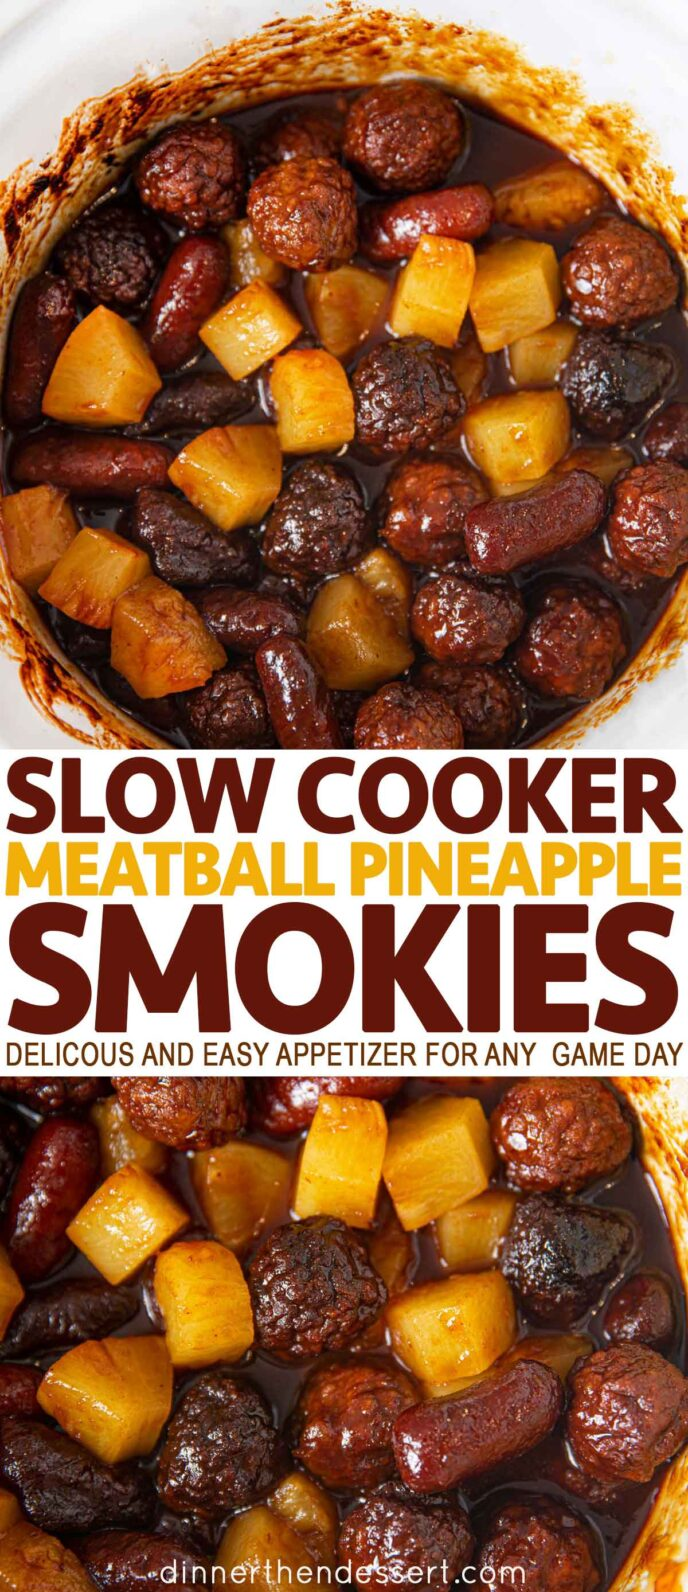 Meatball Pineapple Smokies in a slow cooker